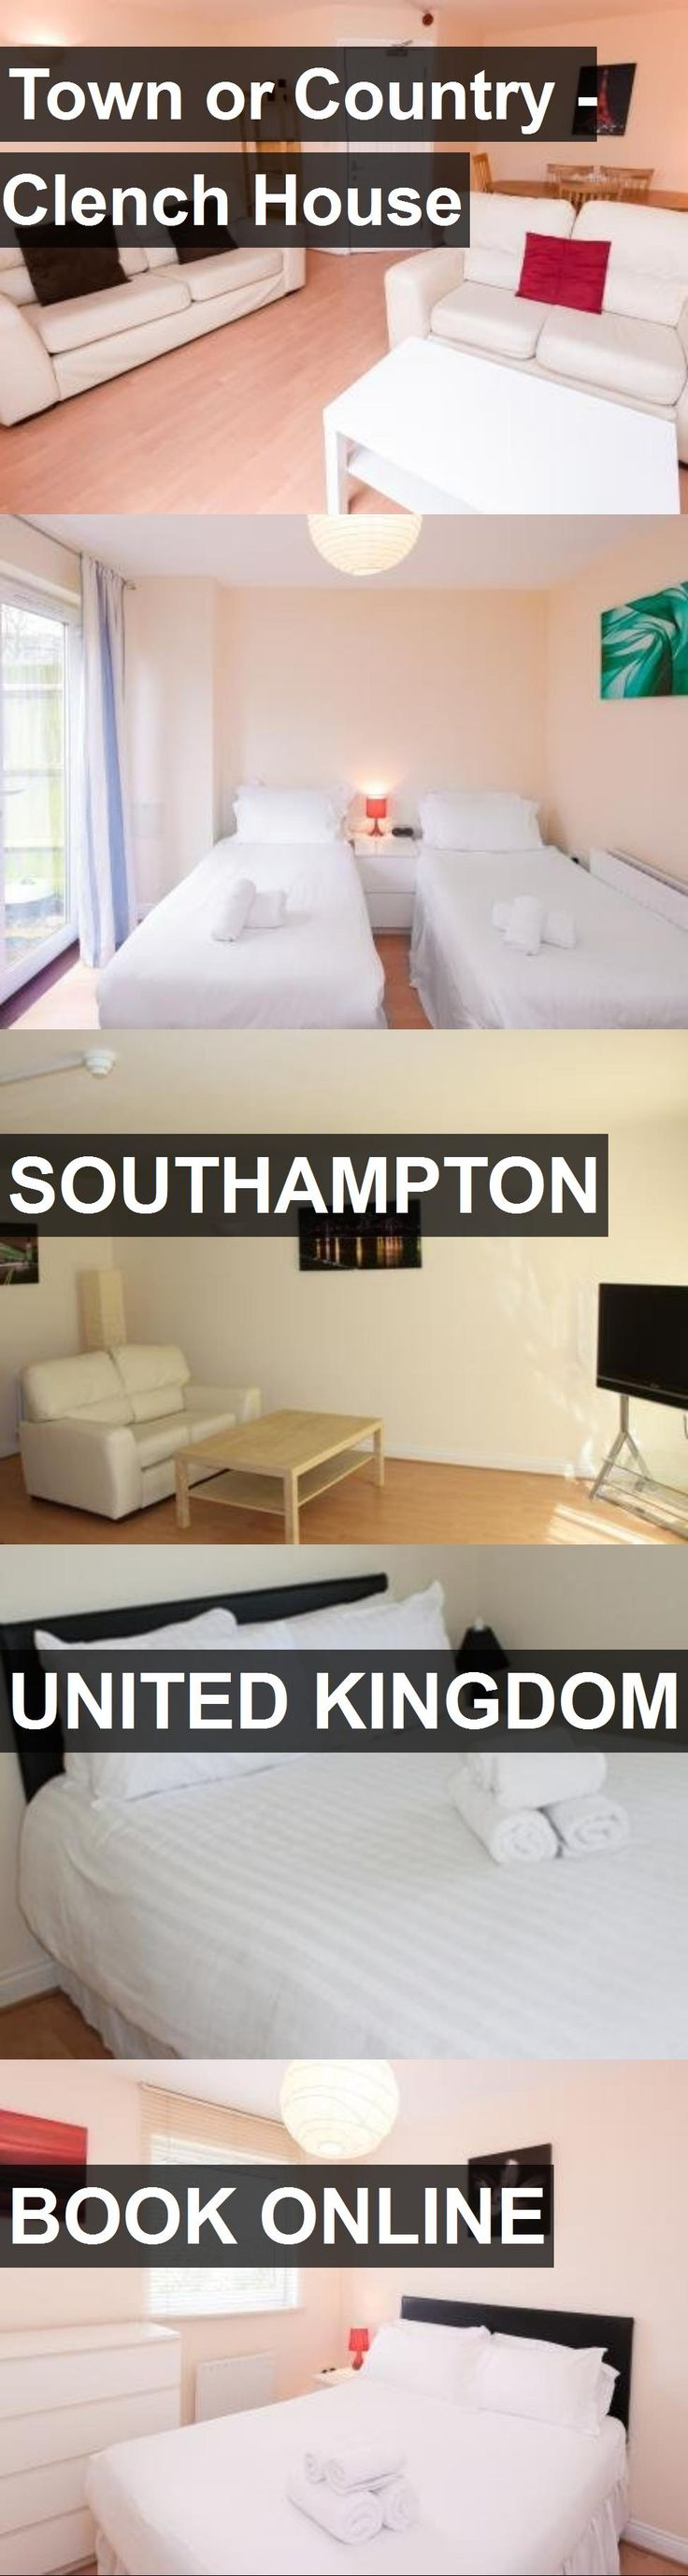 Hotel Town or Country - Clench House in Southampton, United Kingdom. For more information, photos, reviews and best prices please follow the link. #UnitedKingdom #Southampton #travel #vacation #hotel